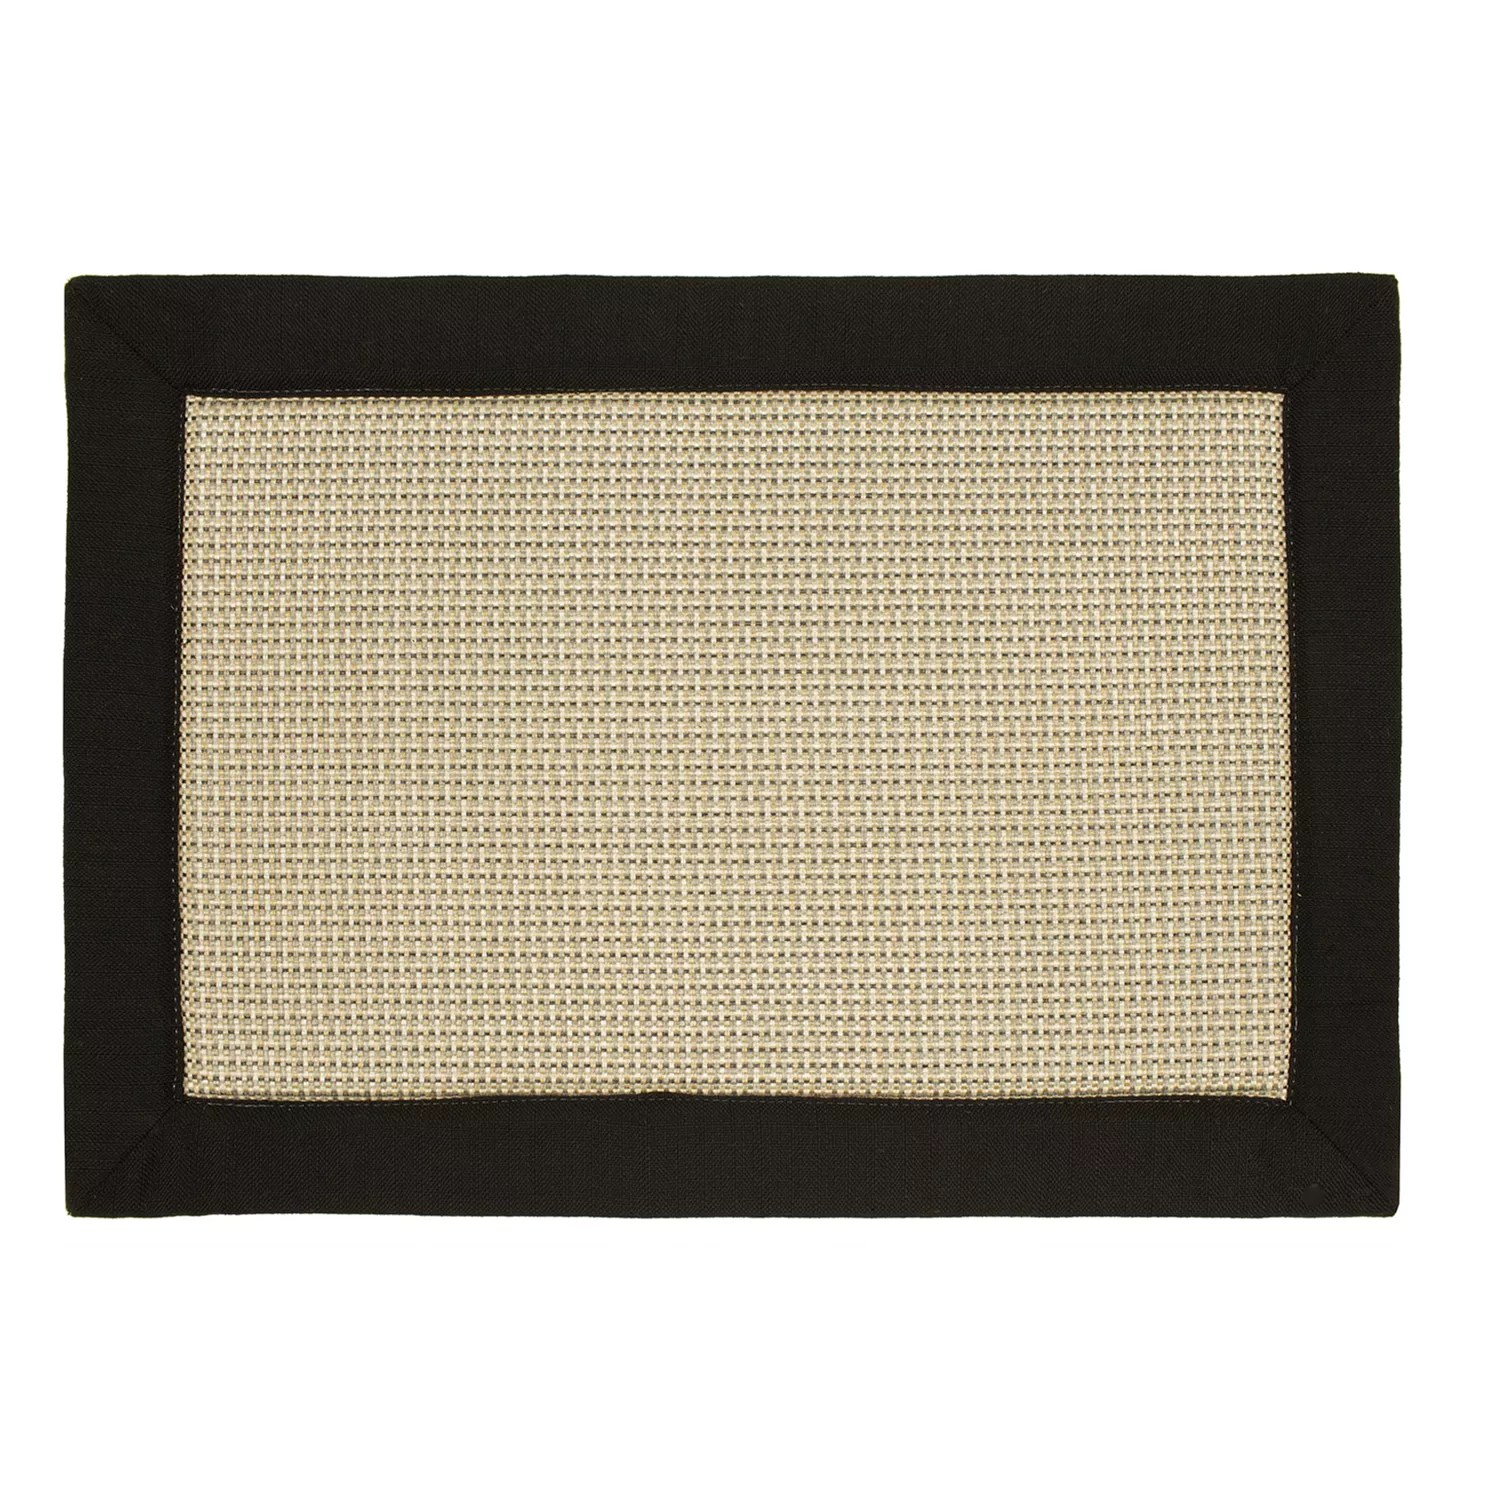 black kitchen rugs counter options home decor kohl s sonoma goods for life memory foam rug